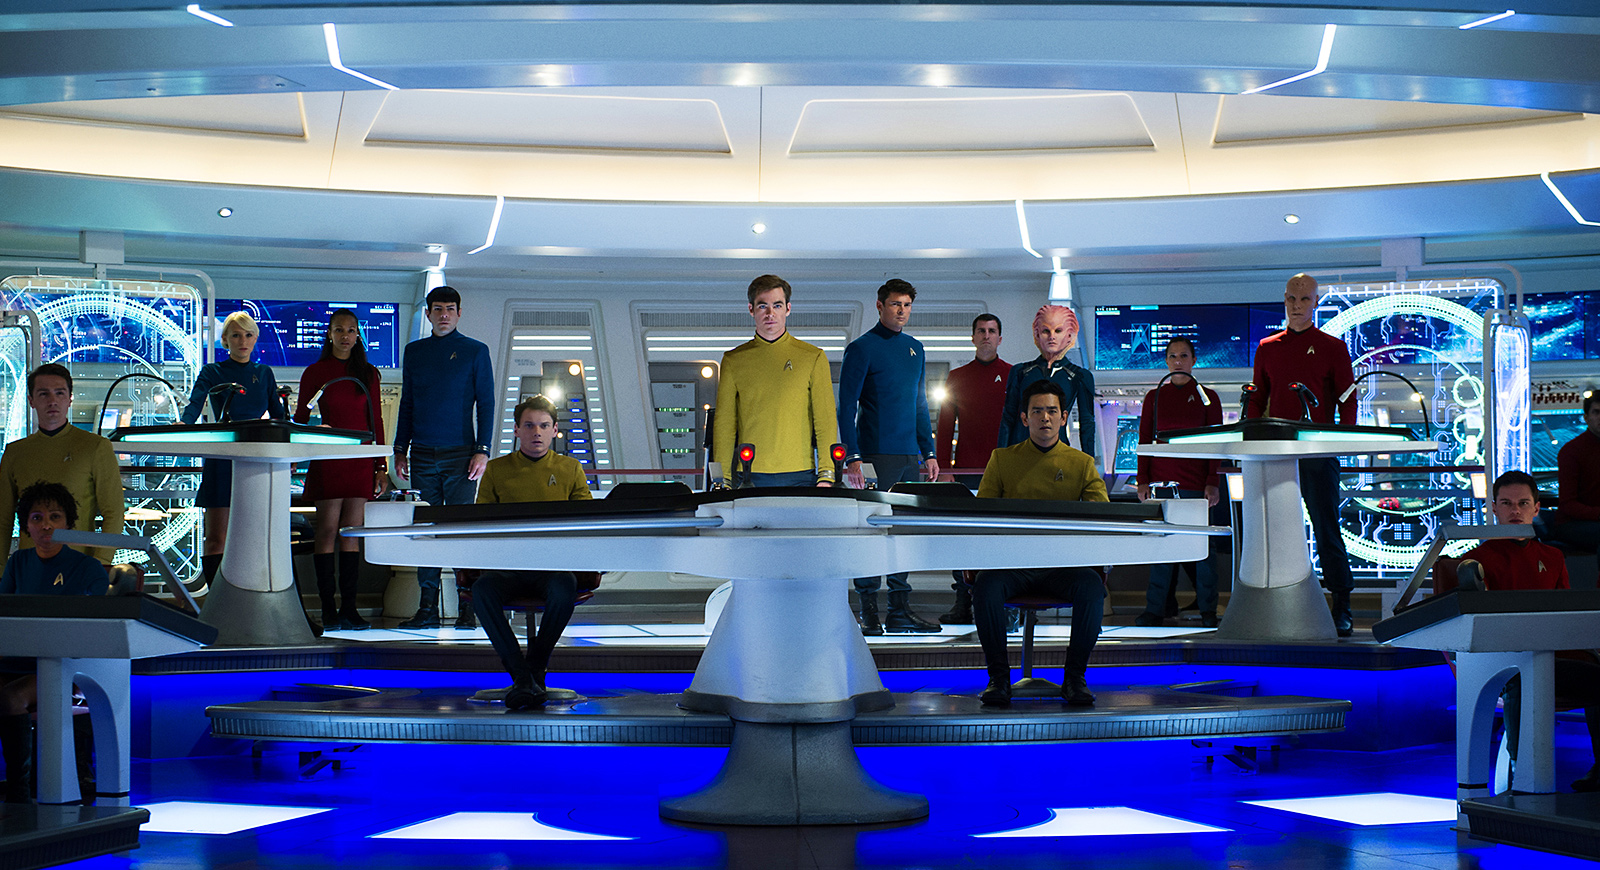 Die Crew der Enterprise in Star Trek Beyond. Foto: Paramount Pictures